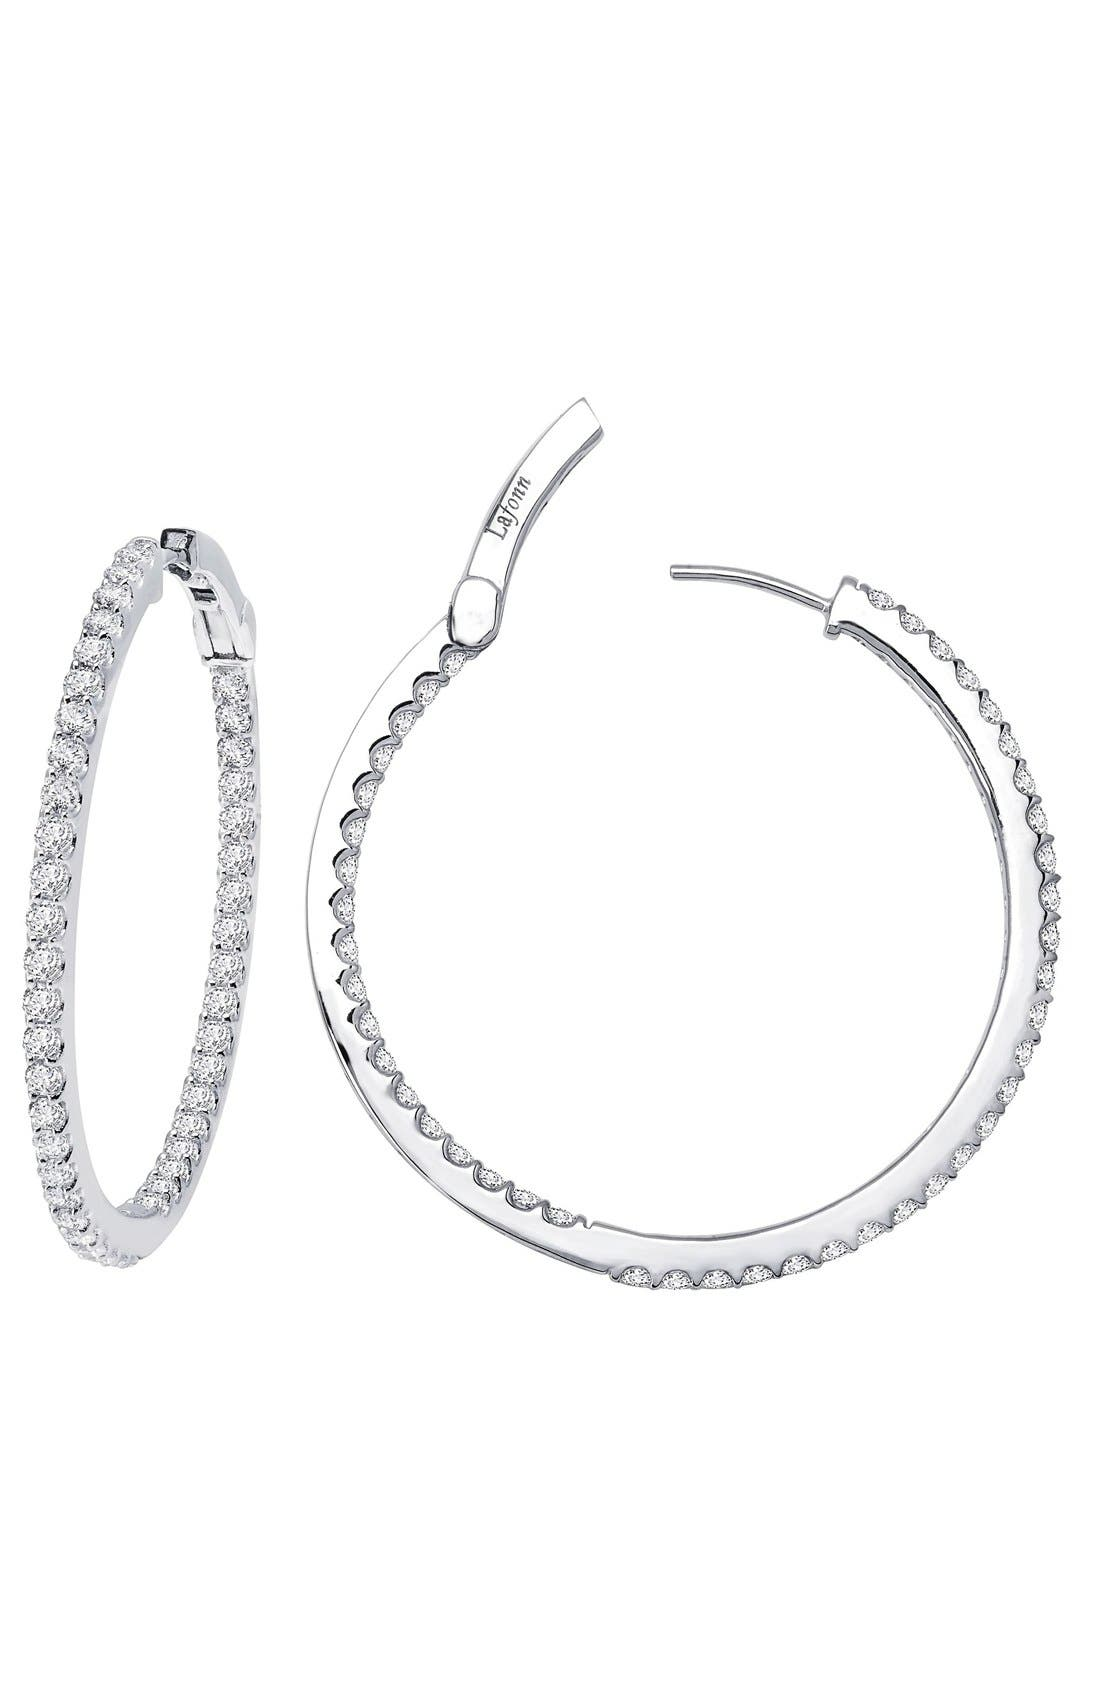 Lafonn 'Lassaire' Hoop Earrings